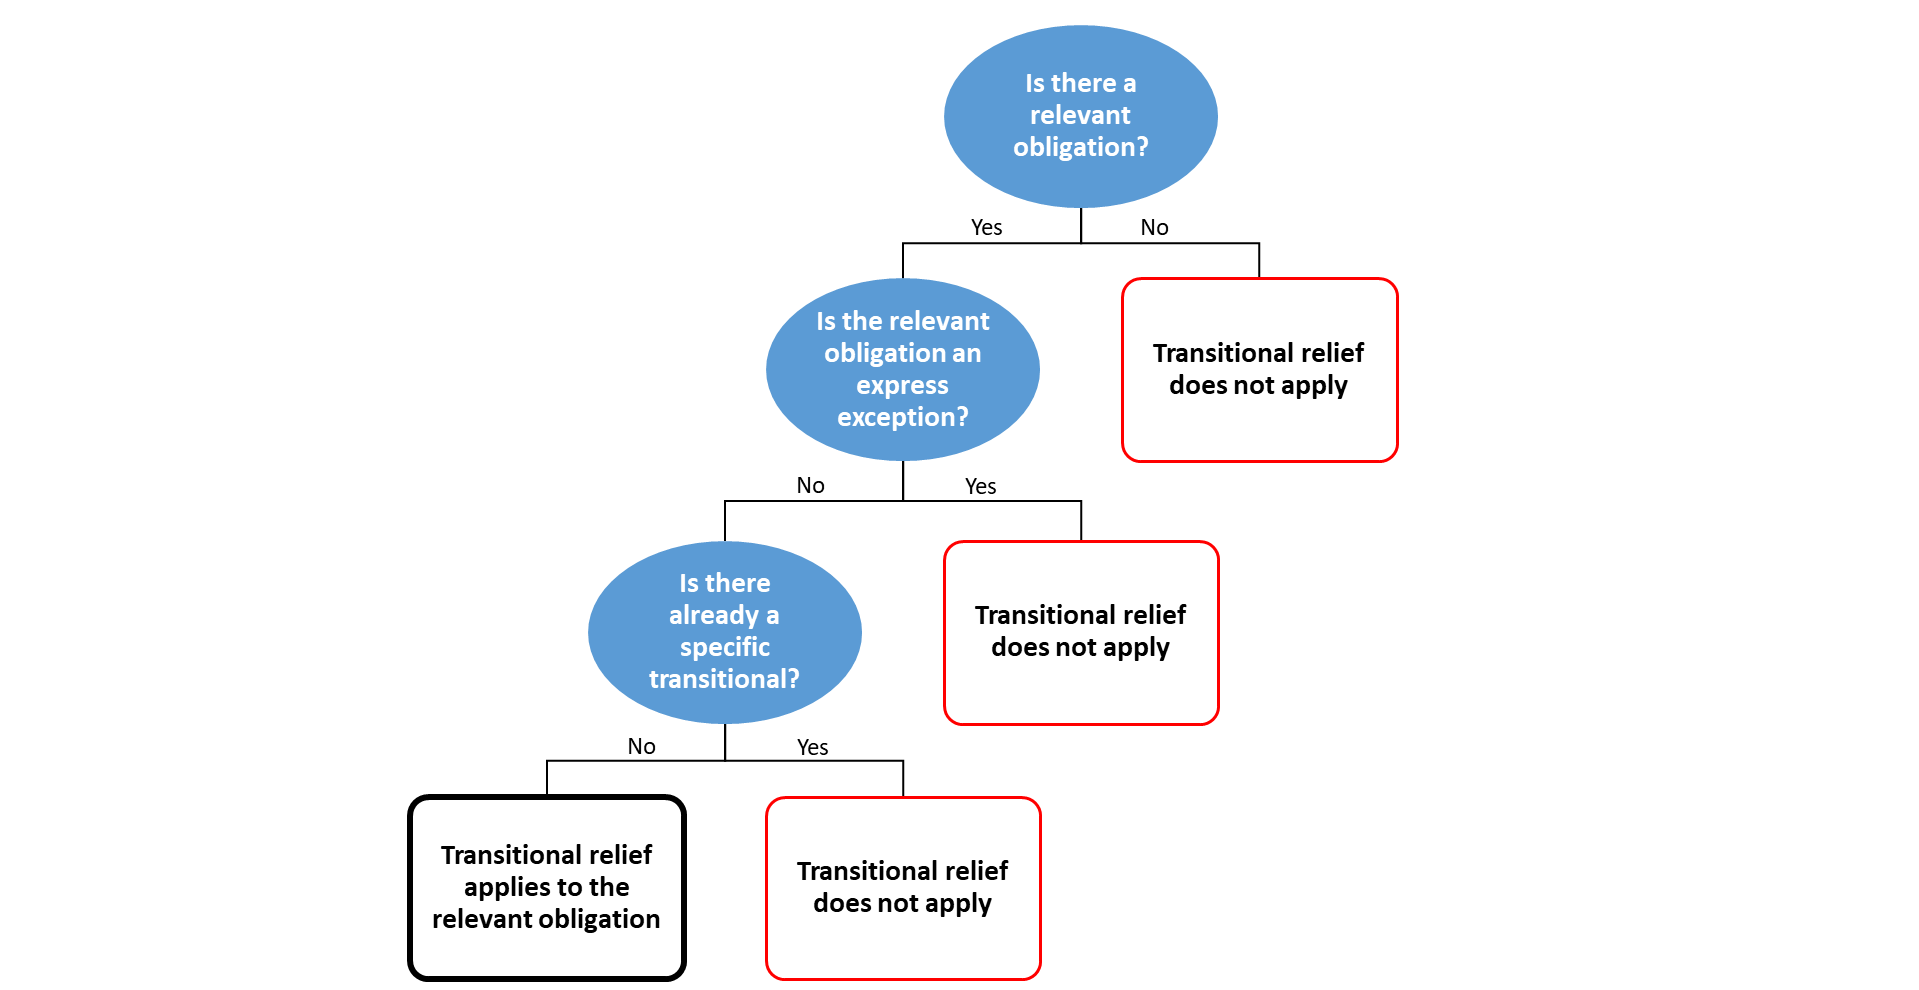 Diagram depicting if transitional relief applies to the relevant obligation or not